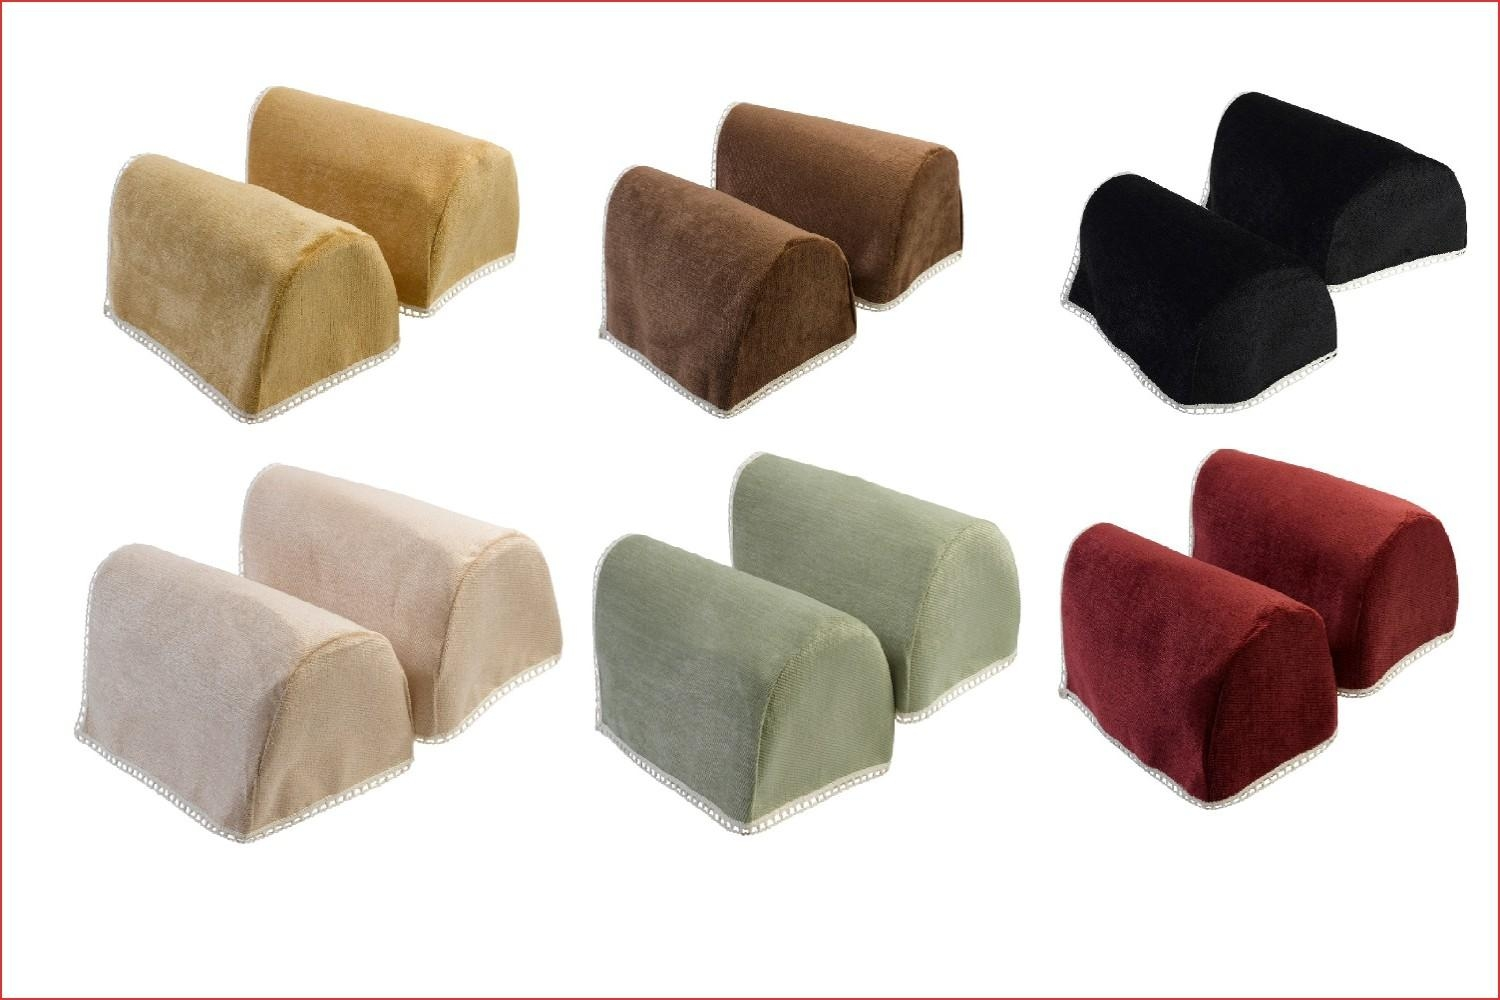 Sofa Arm Cover Protectors Luxury Chenille Round Arm Caps Plain In Arm Protectors For Sofas (Image 12 of 20)